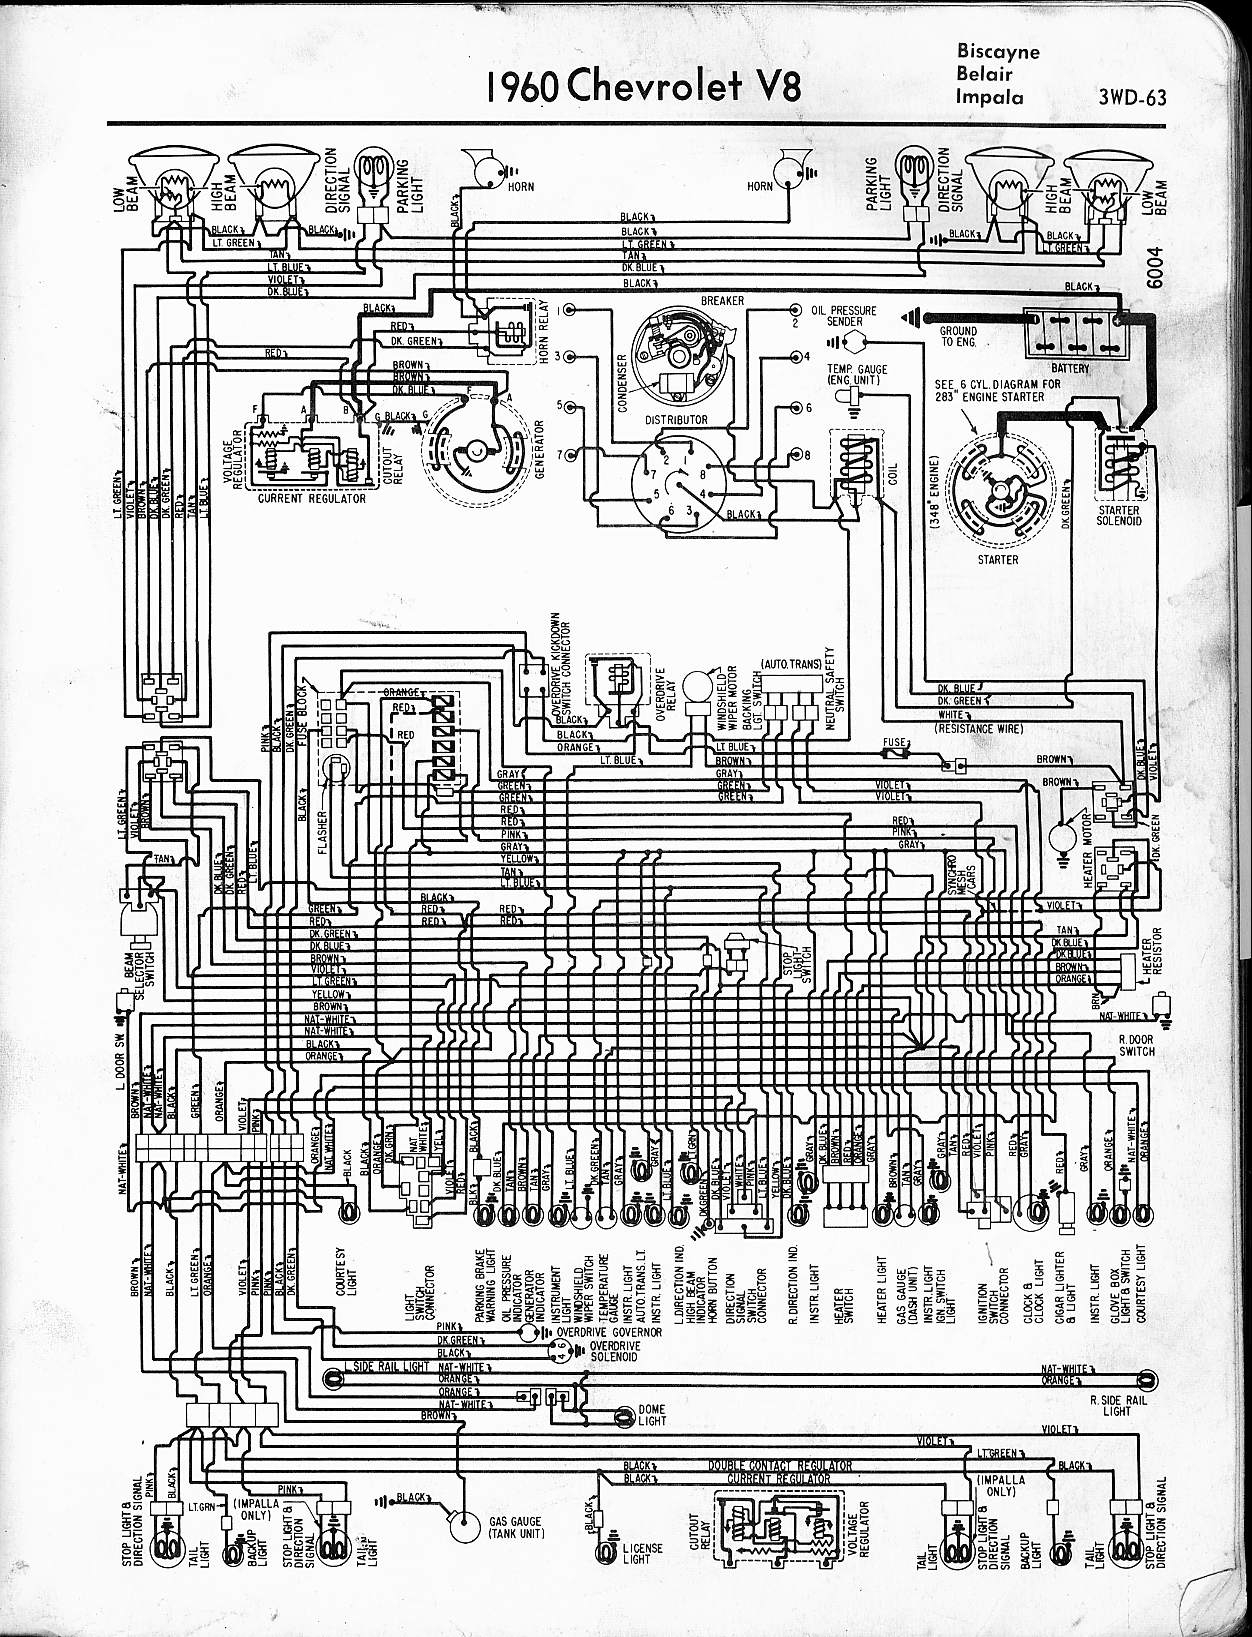 2005 chevy impala wiring diagram Collection-1960 V8 Biscayne Belair Impala 17-t